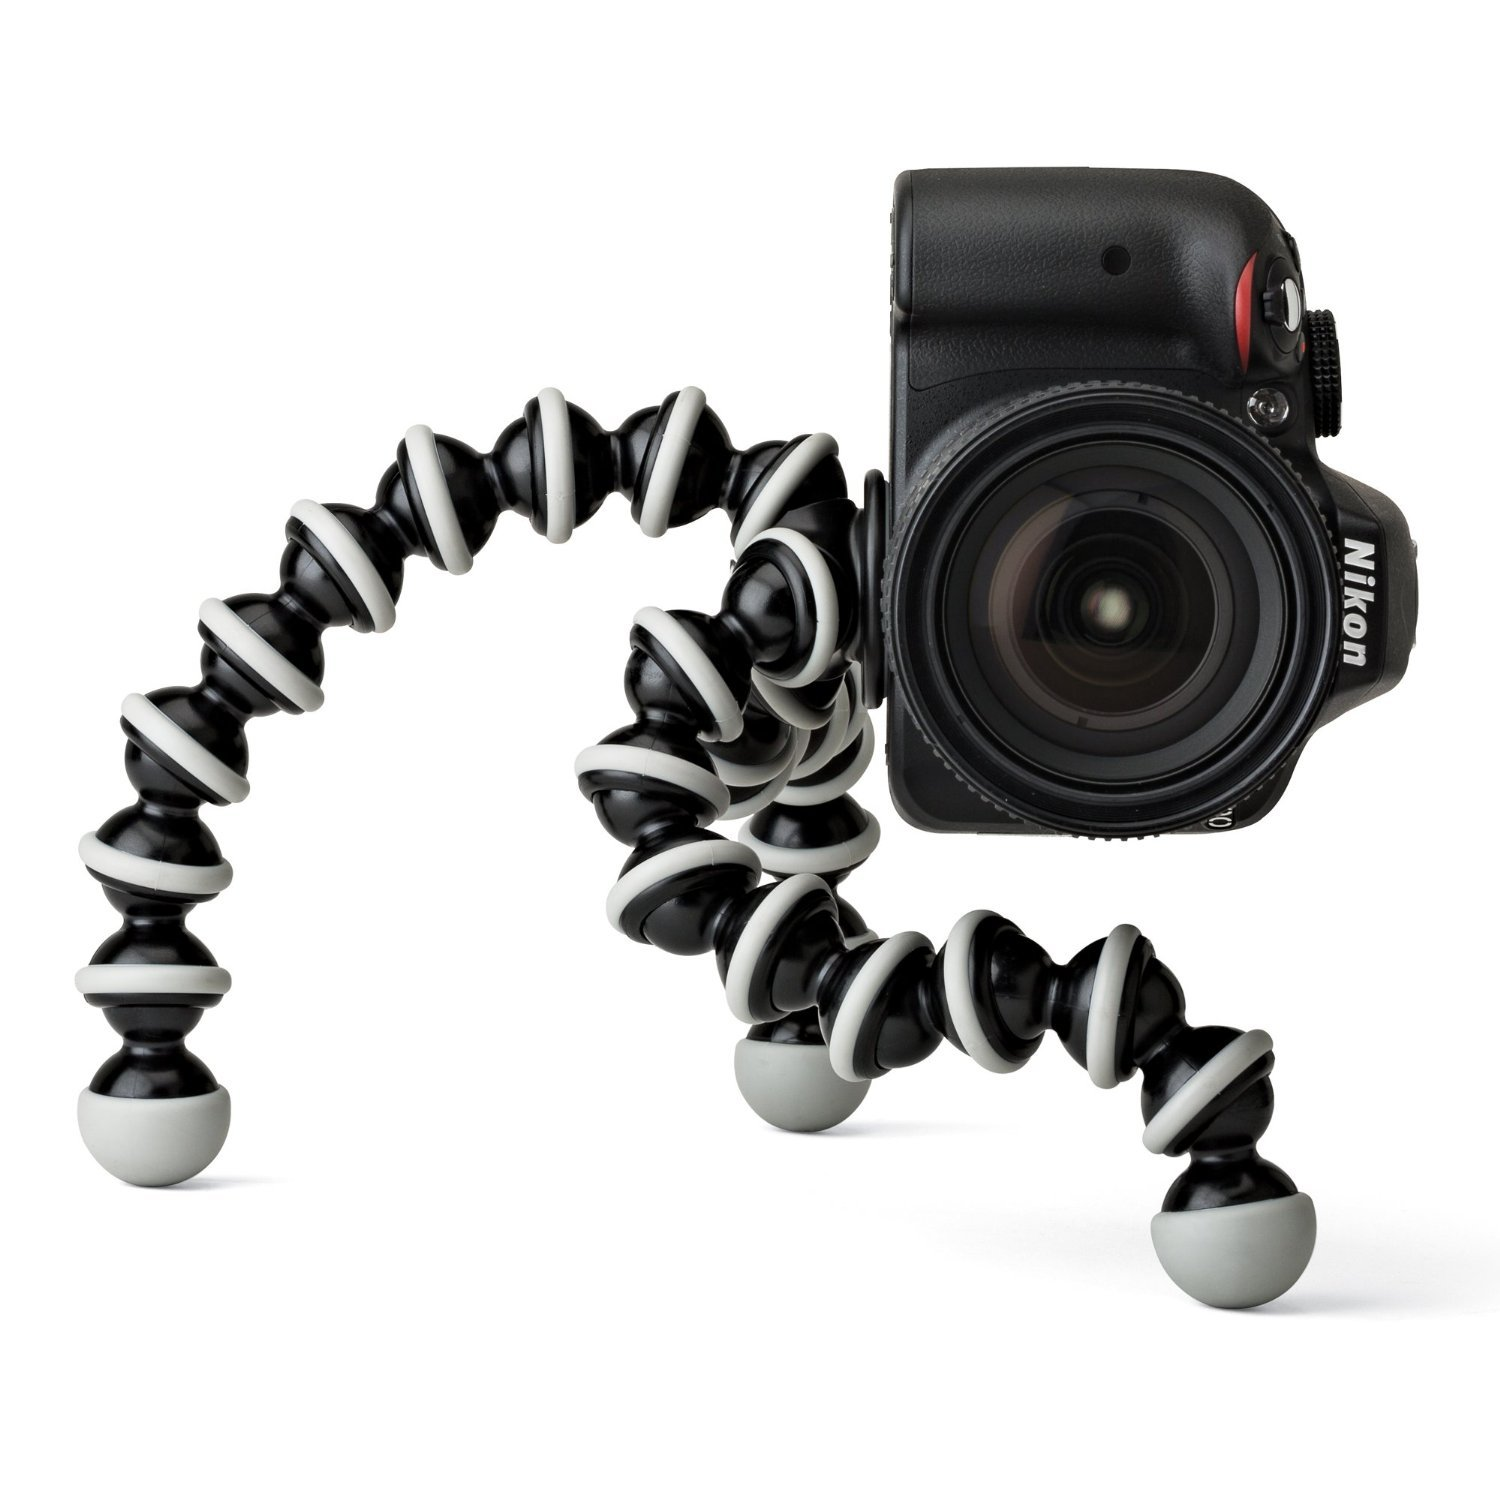 gifts for photographers under 50 dollars flexible tripod